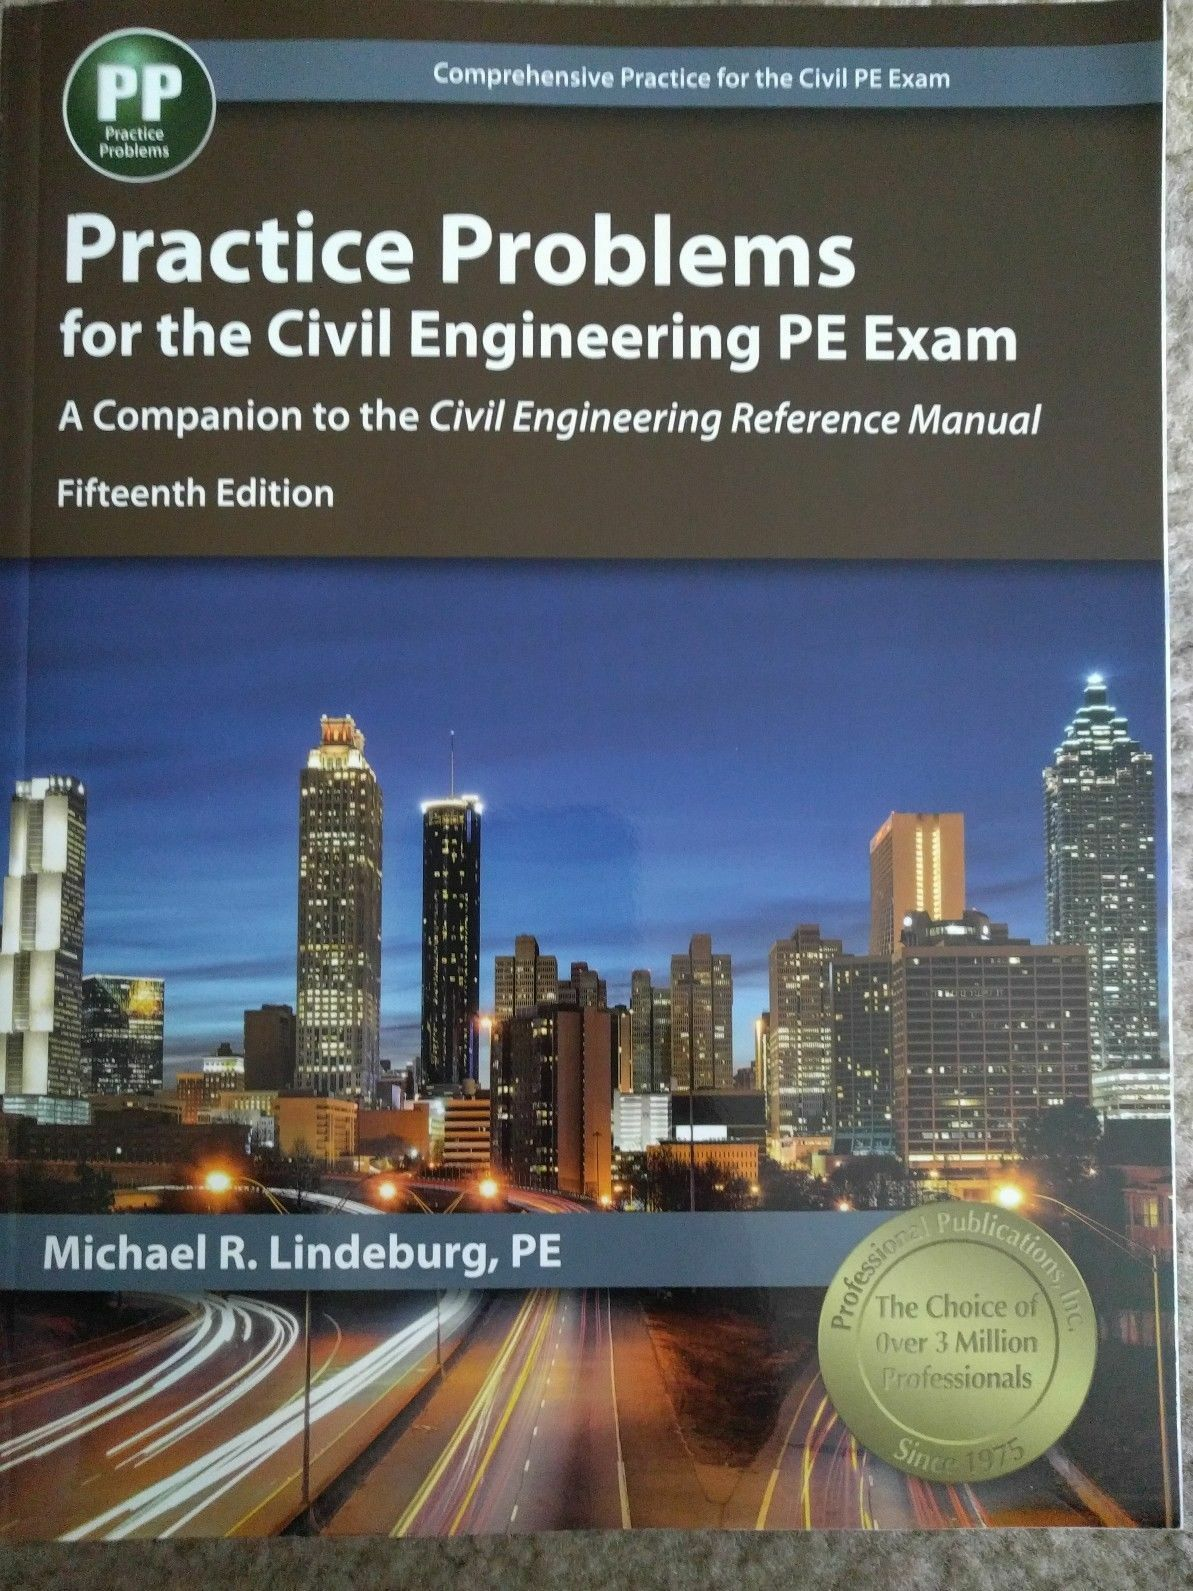 Practice Problems for the Civil Engineering PE Exam by Michael R. Lindeburg  (2015, Paperback, New Edition) | eBay